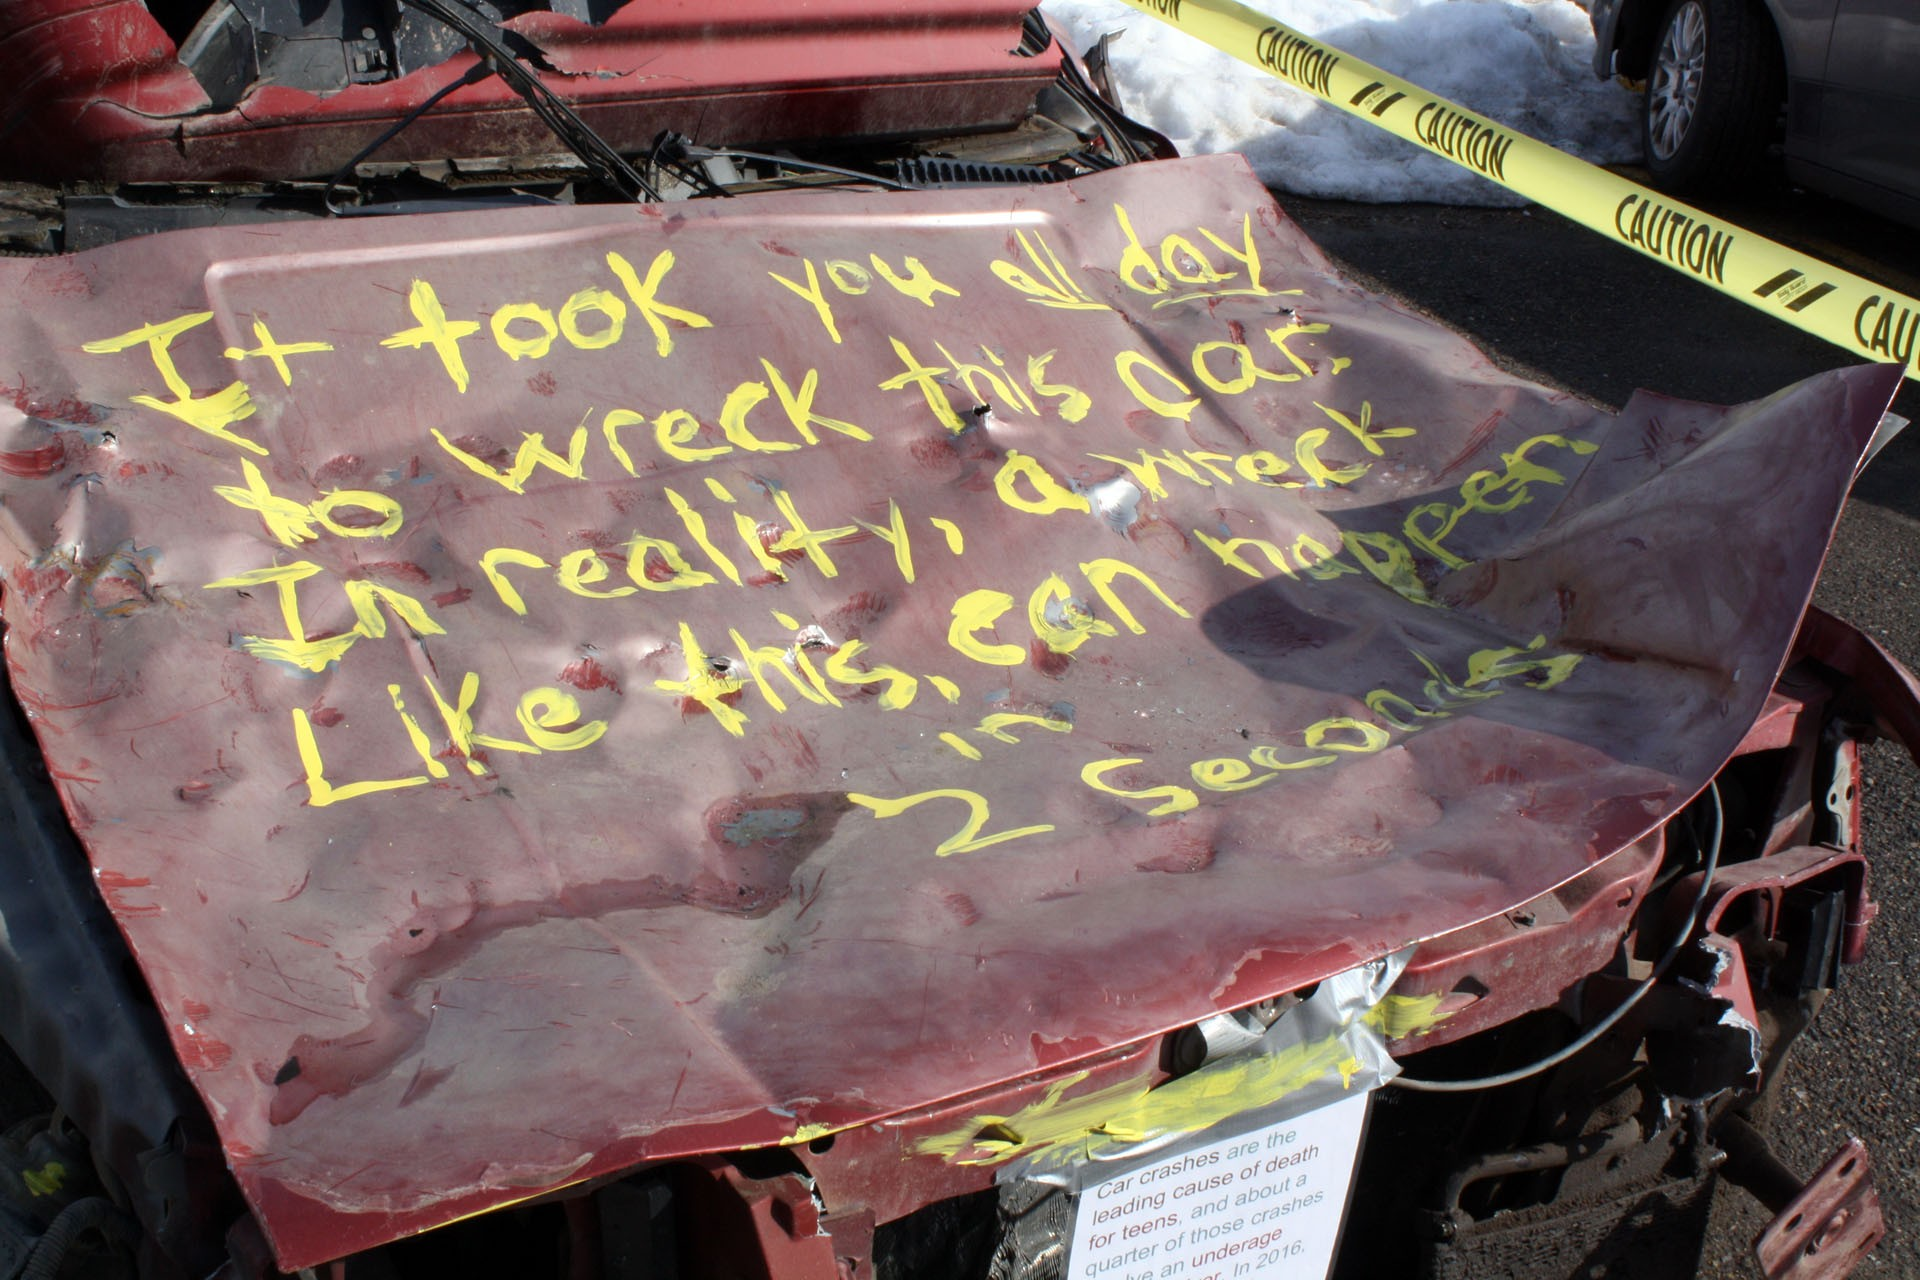 <strong>The hood reads: It took all day to wreck this car. In reality, a wreck like this can happen in two seconds. Nearly 20 percent of all fatal crashes involving teens happened because alcohol was a factor, according to the National Highway Traffic Safety Administration.</strong>